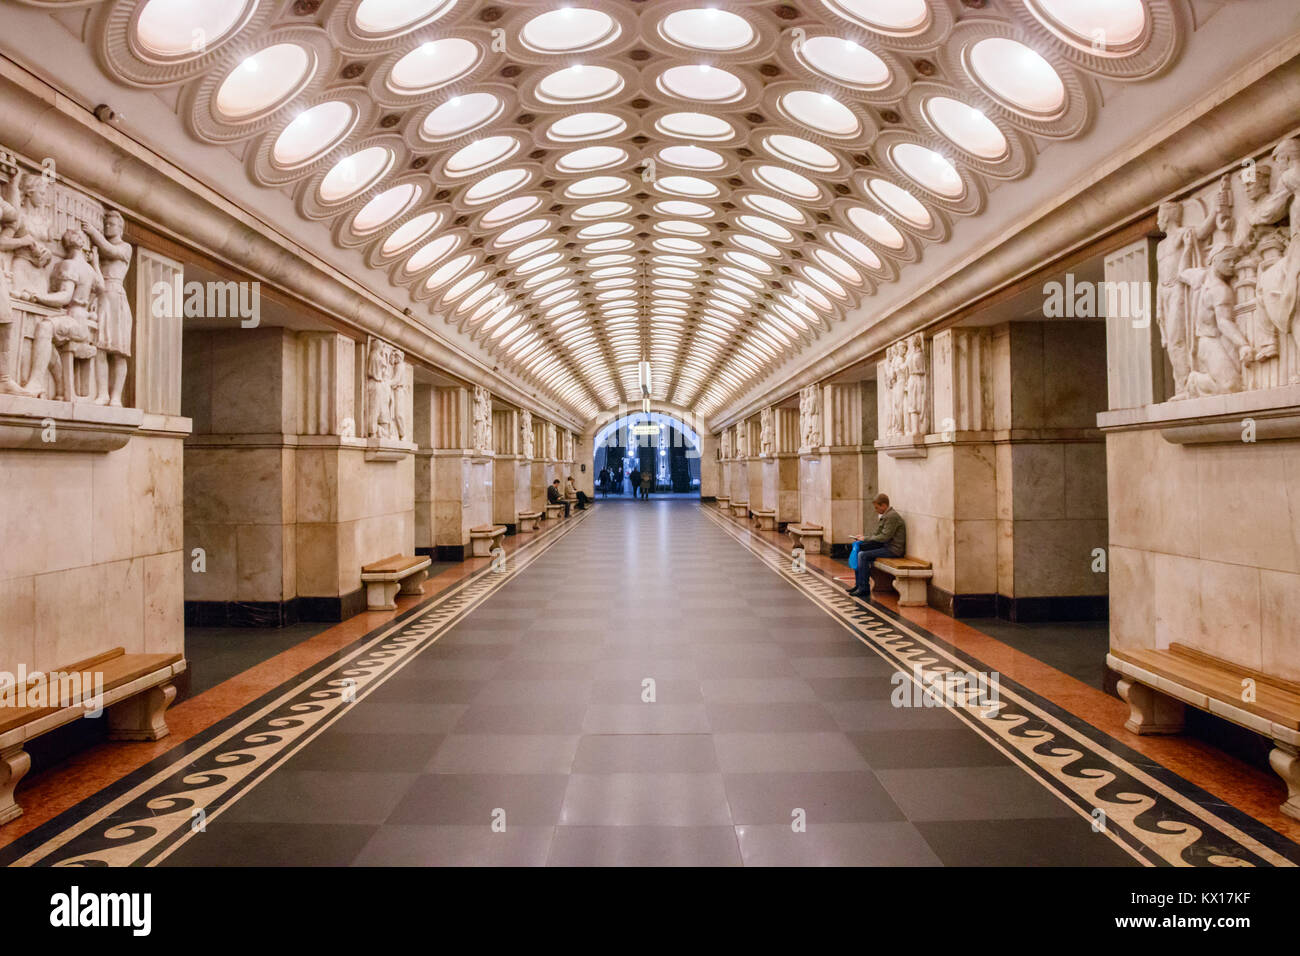 Platform of the Mayakovskaya station, one of the most famous stations of the Moscow Metro and part of the Arbatsko Stock Photo